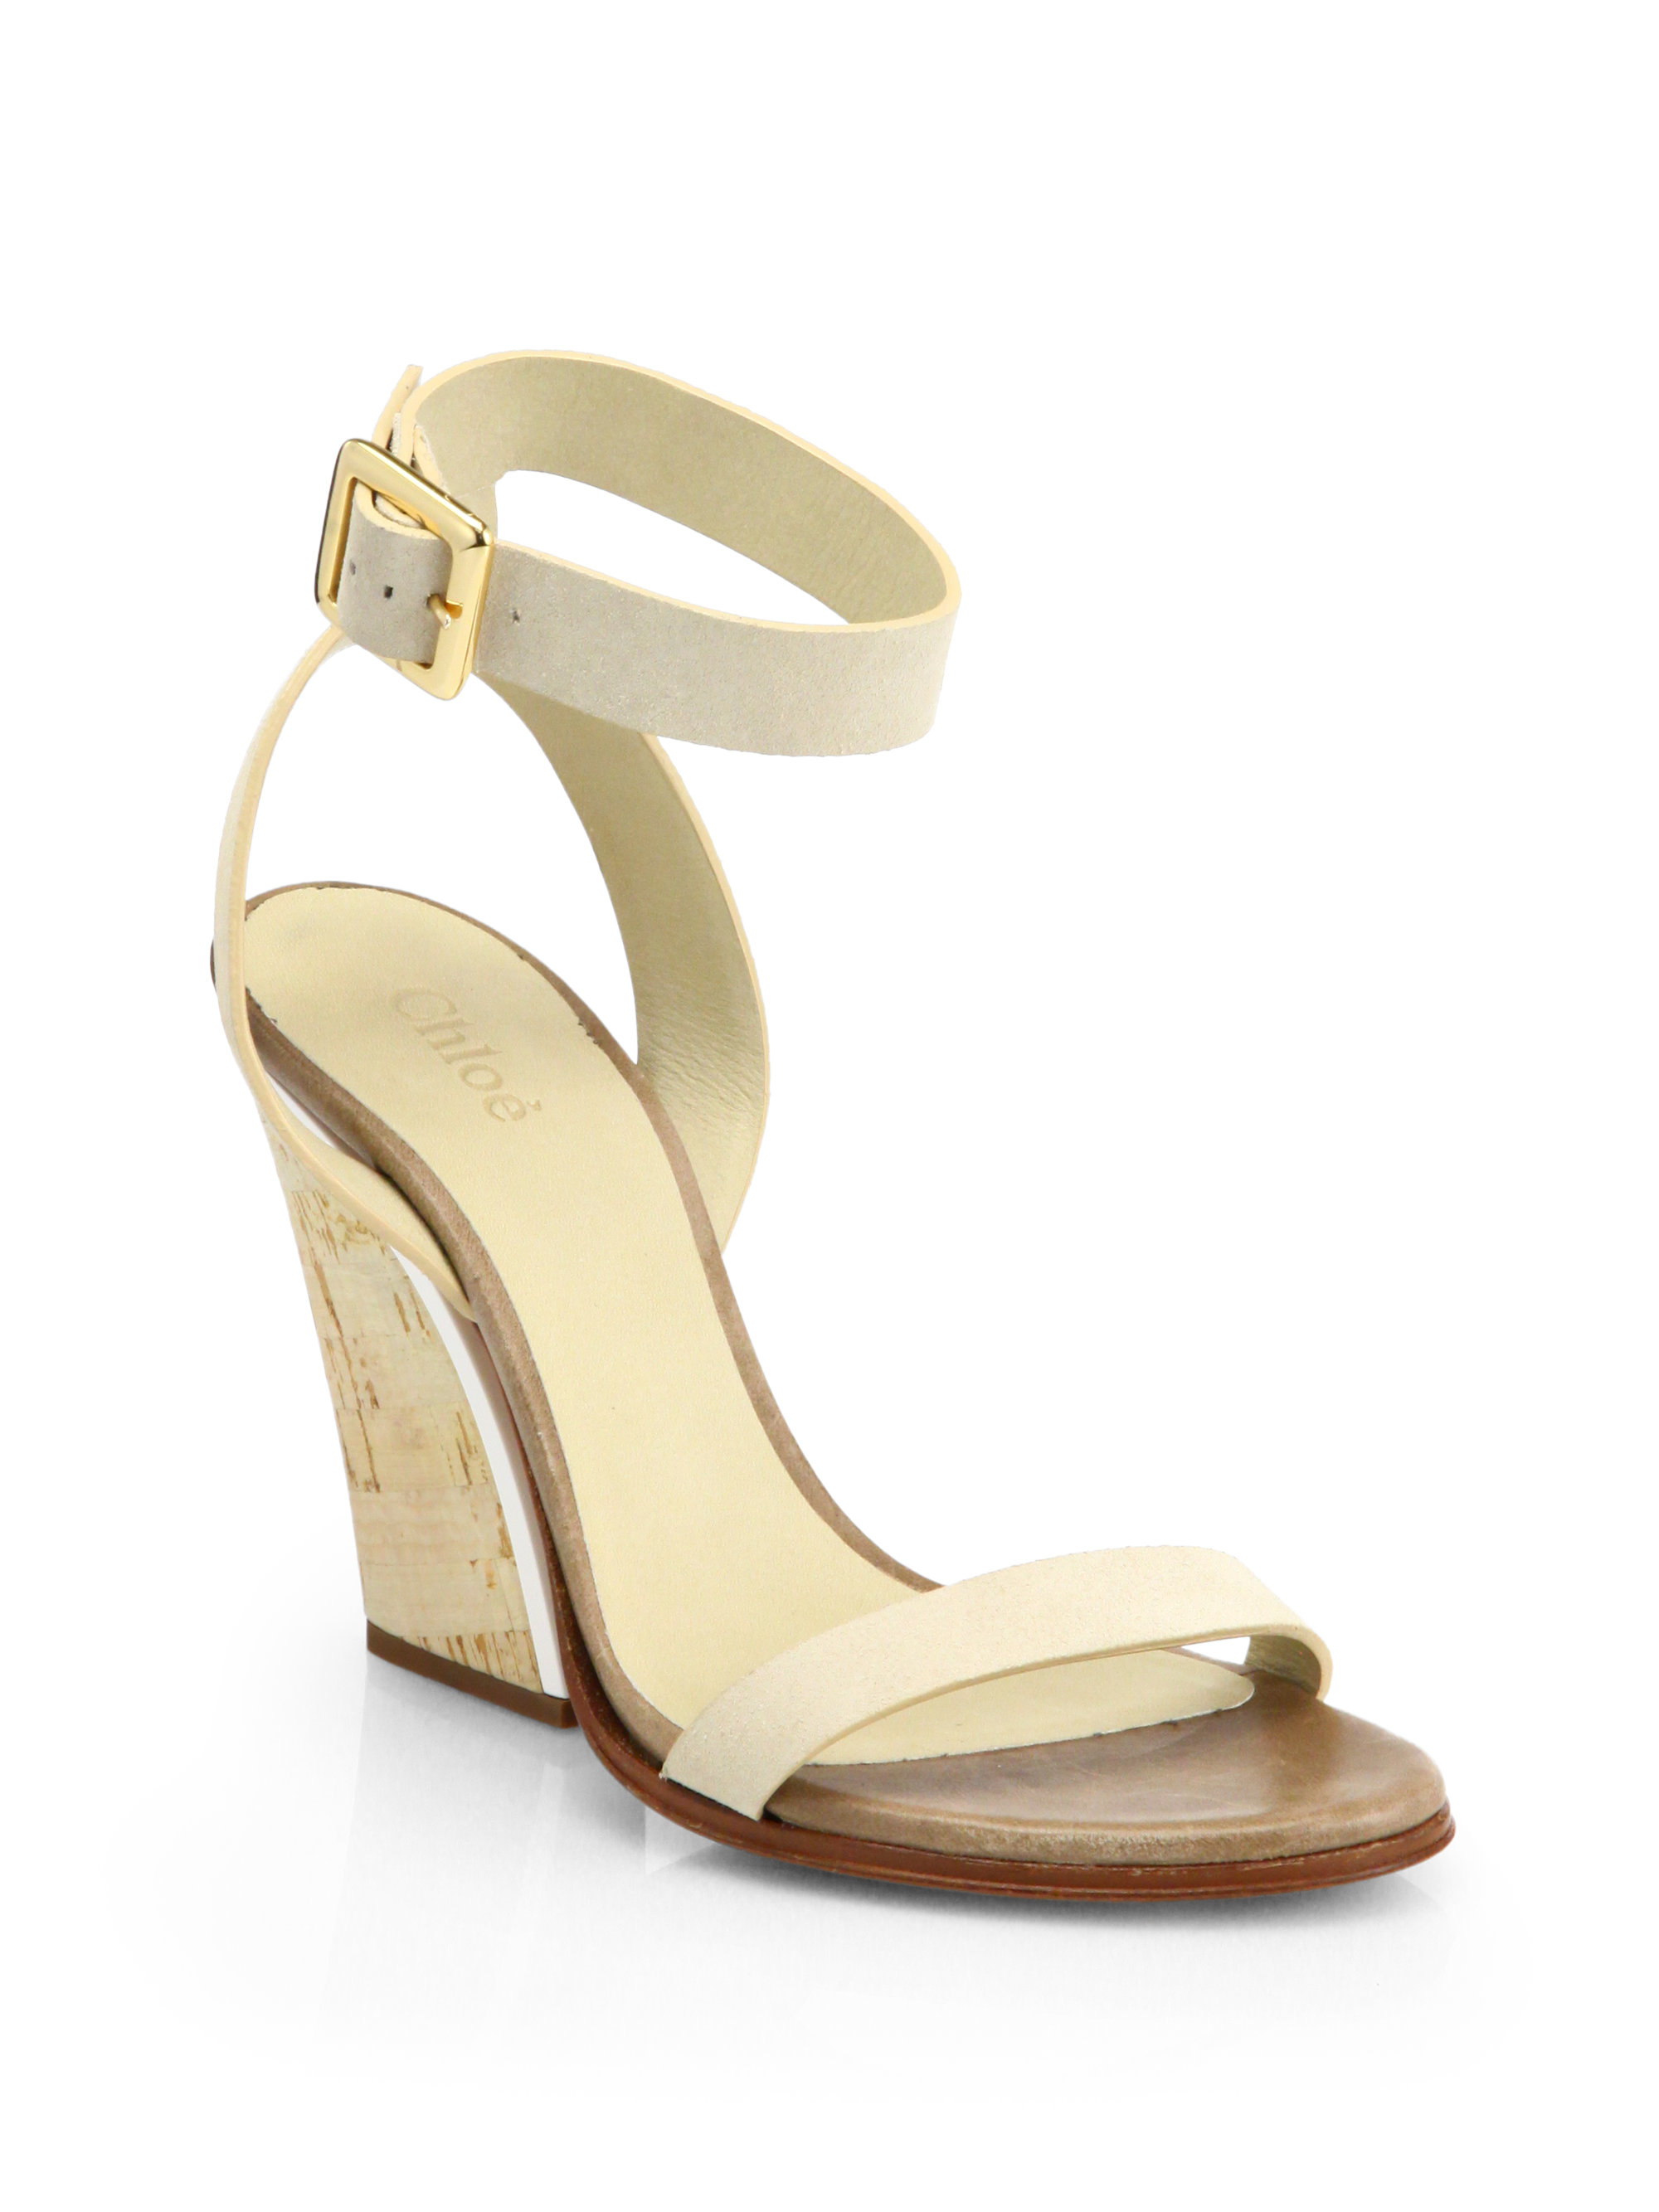 chlo 233 leather cork wedge sandals in white open white lyst